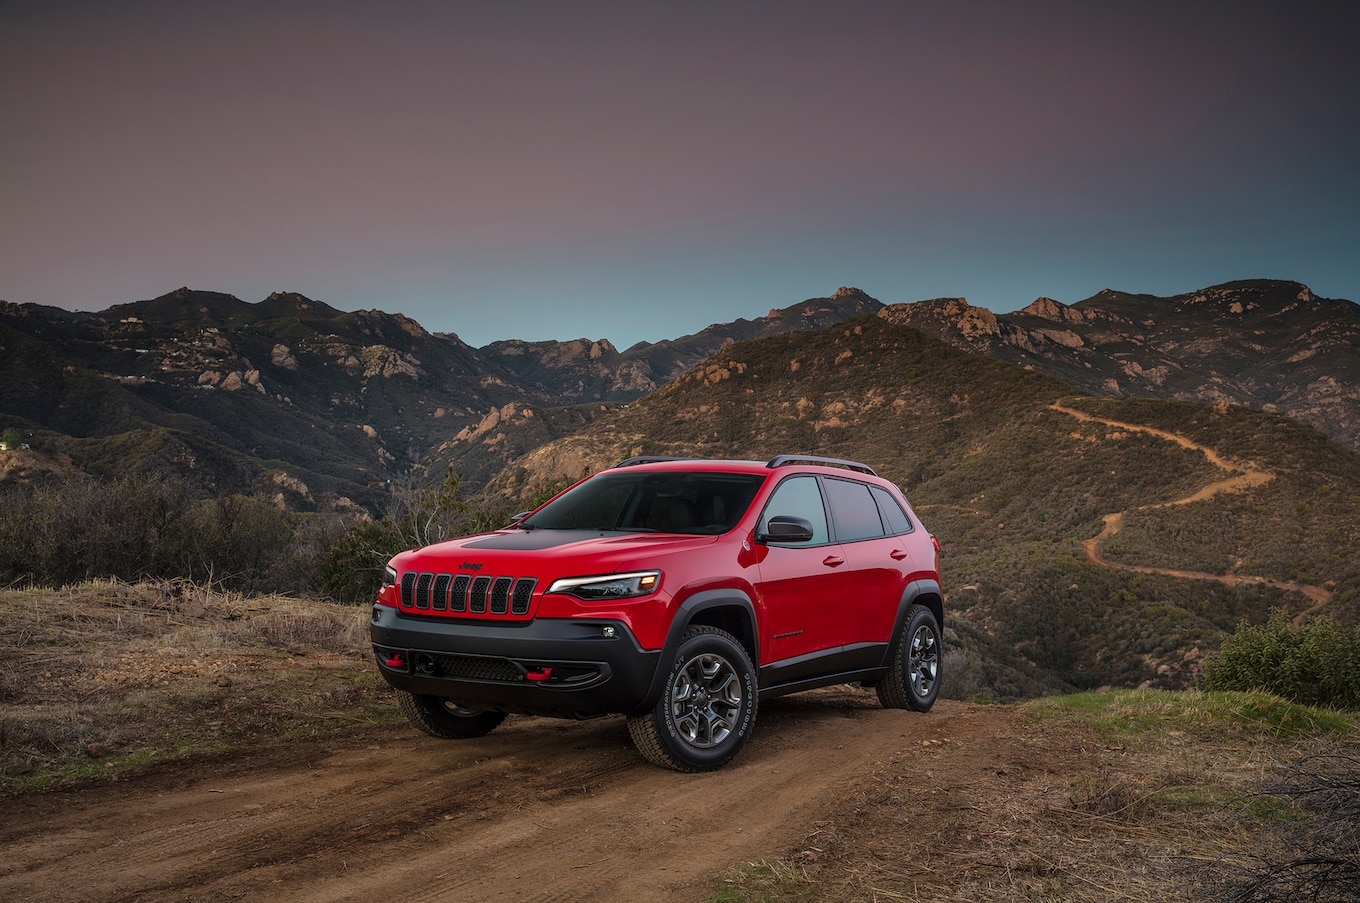 For the 2019 model year, the Jeep Cherokee received a major refresh. Gone  is the controversial tiered headlight design with LED running lights and  turn ...